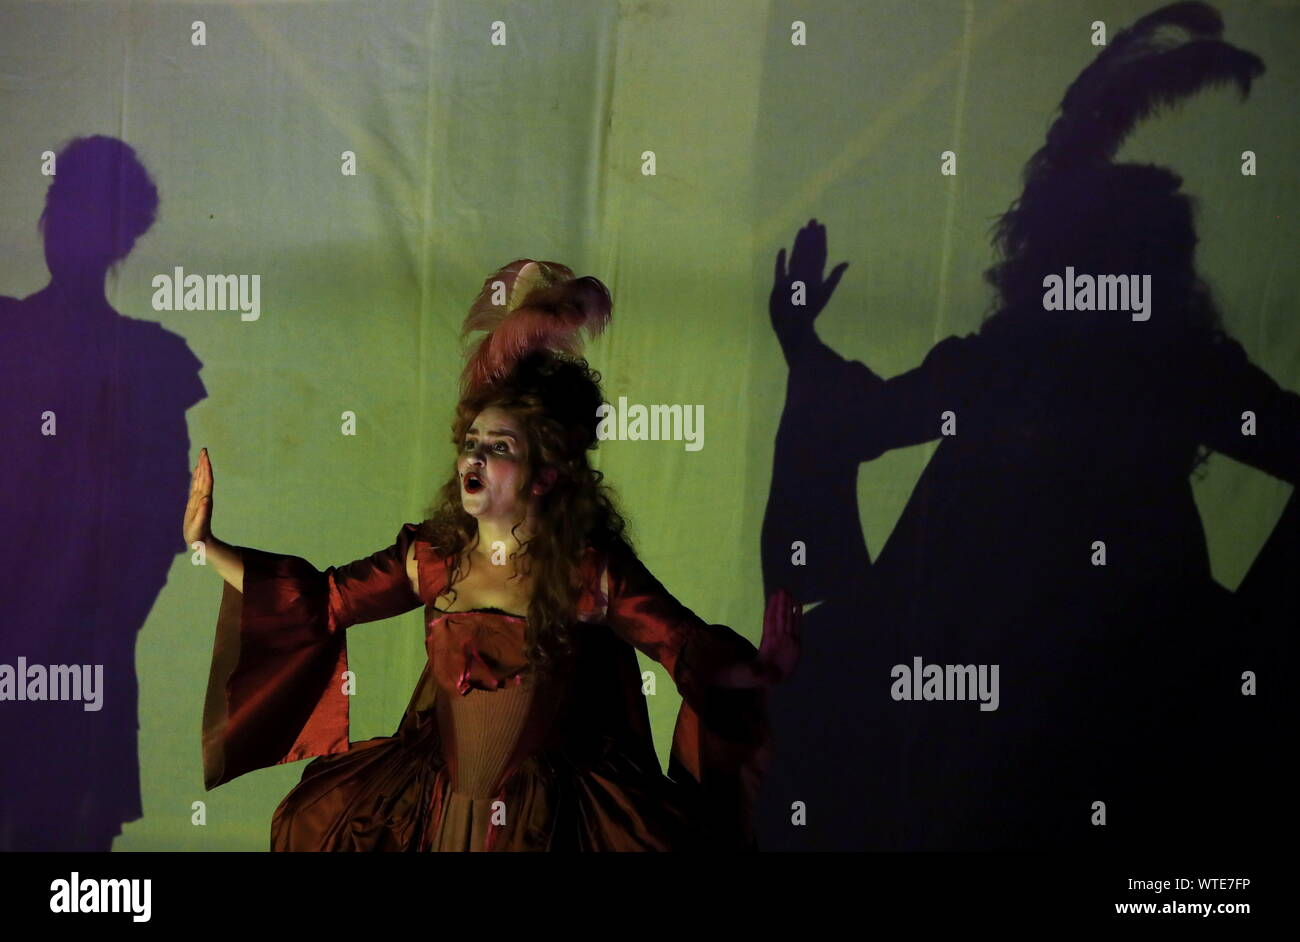 Moscow, Russia. 11th Sep, 2019. MOSCOW, RUSSIA - SEPTEMBER 11, 2019: Singer Vera Chekanova as Aurora performs in a scene from the opera production of Cephalus and Procris staged at the Patriarch's Palace of the Moscow Kremlin as part of the 2nd Music Festival Tsars and Muses - Opera at the Russian Court. Sergei Karpukhin/TASS Credit: ITAR-TASS News Agency/Alamy Live News Stock Photo